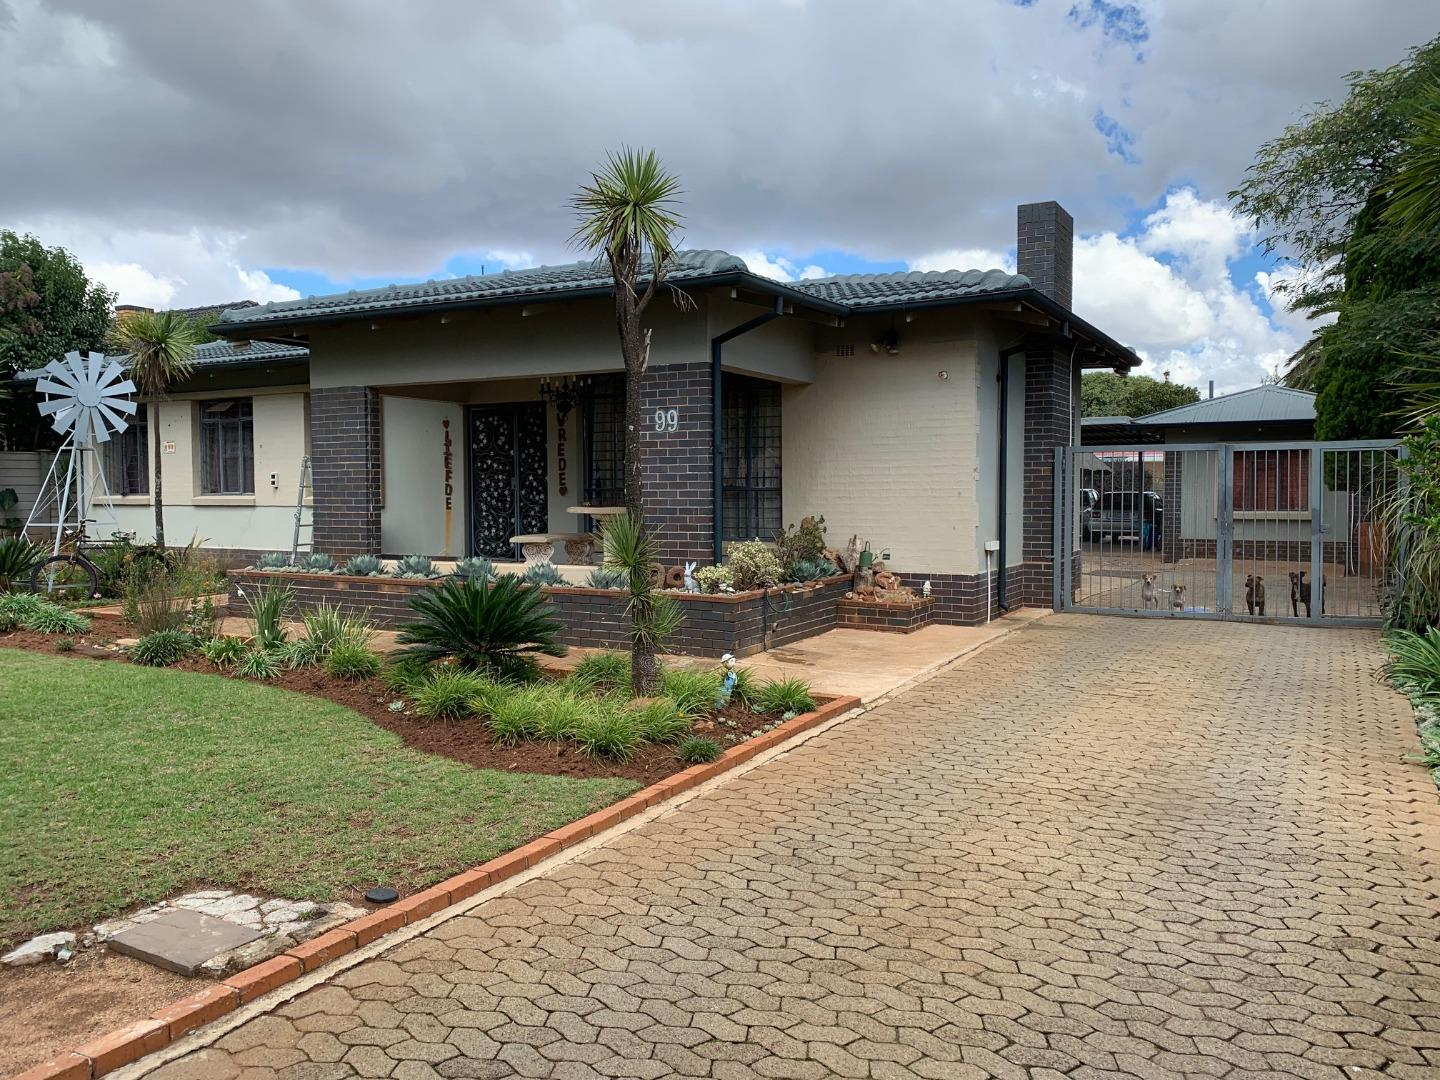 3 Bedroom  for Sale in Monument, Krugersdorp - Gauteng